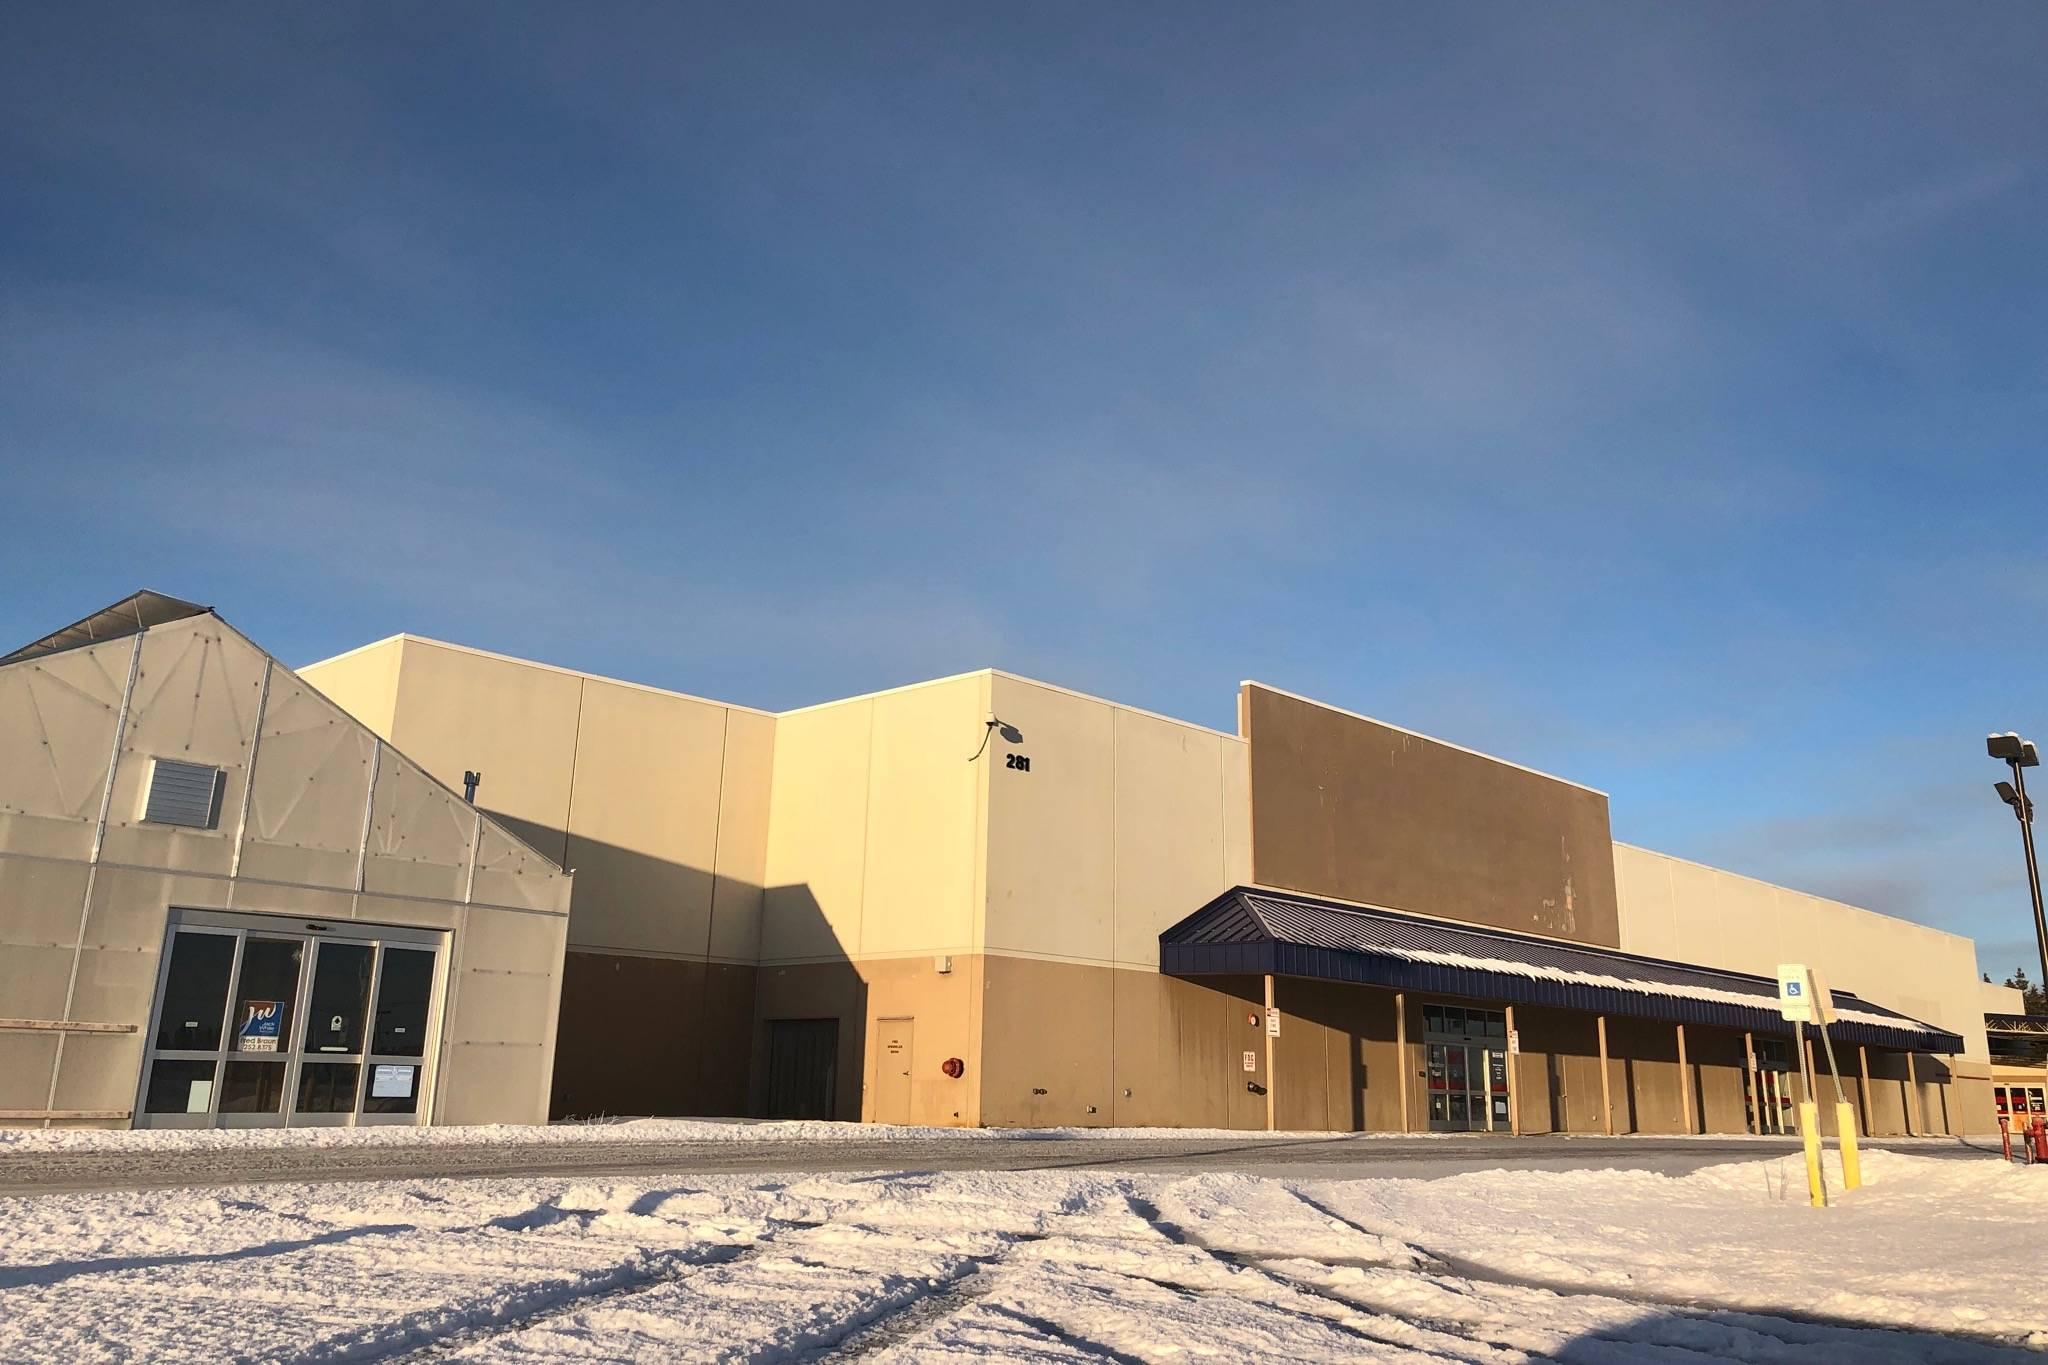 The former Lowe's Home Improvement warehouse space on Marathon Road in Kenai stands empty Friday. (Photo by Victoria Petersen/Peninsula Clarion)